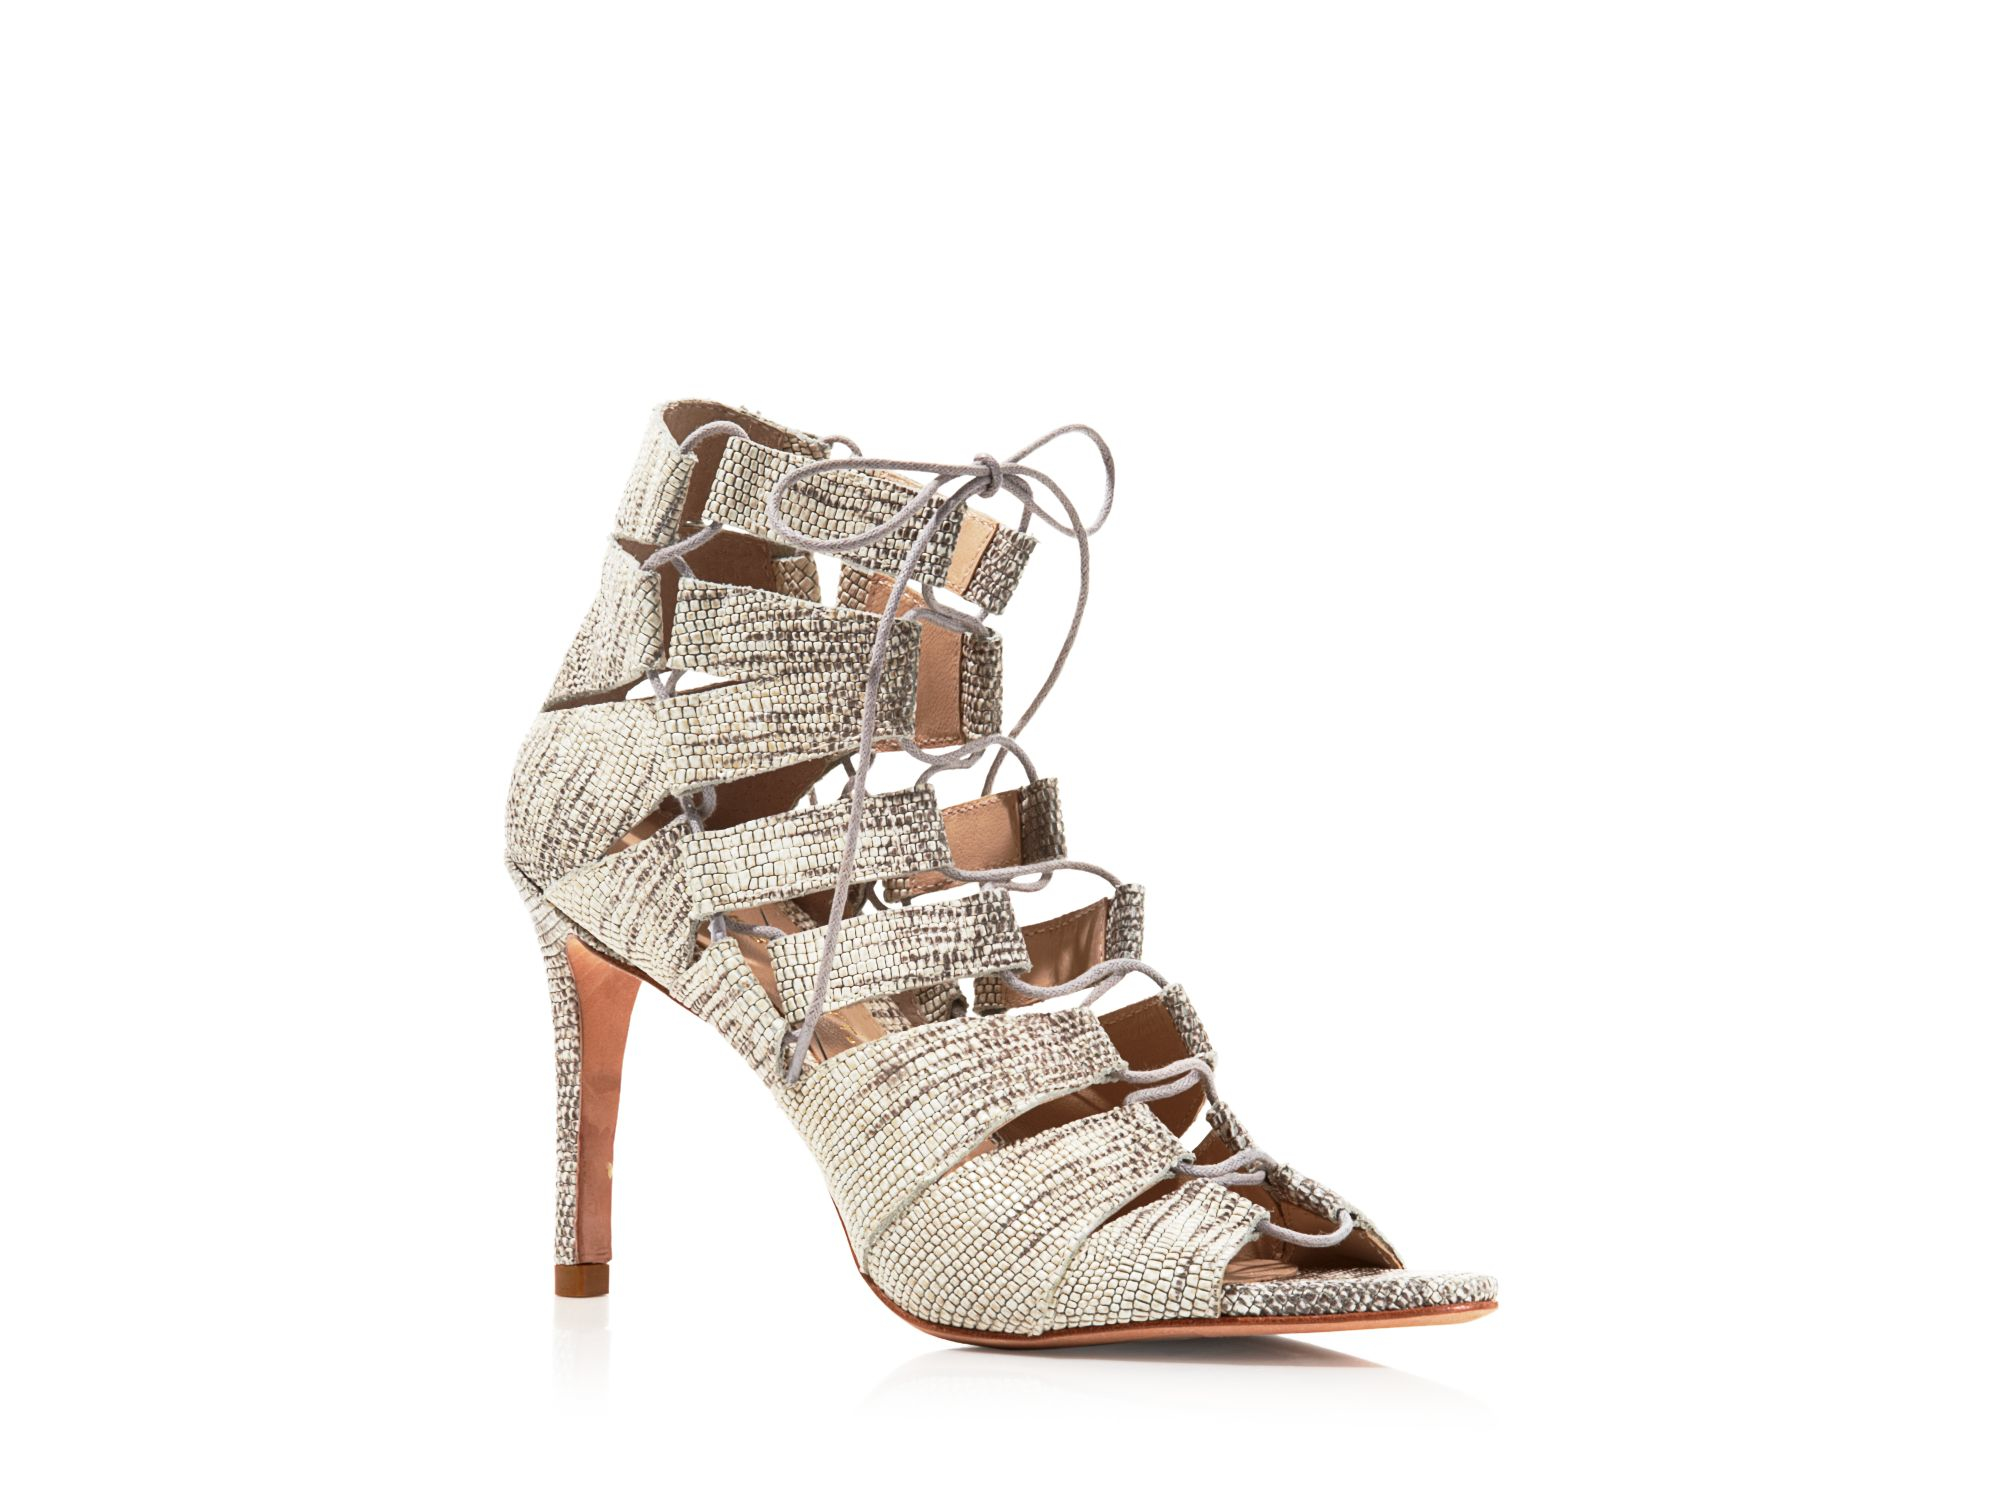 Loeffler Randall Embossed Leather Lace-Up Sandals store cheap online under $60 for sale igPt0mBY